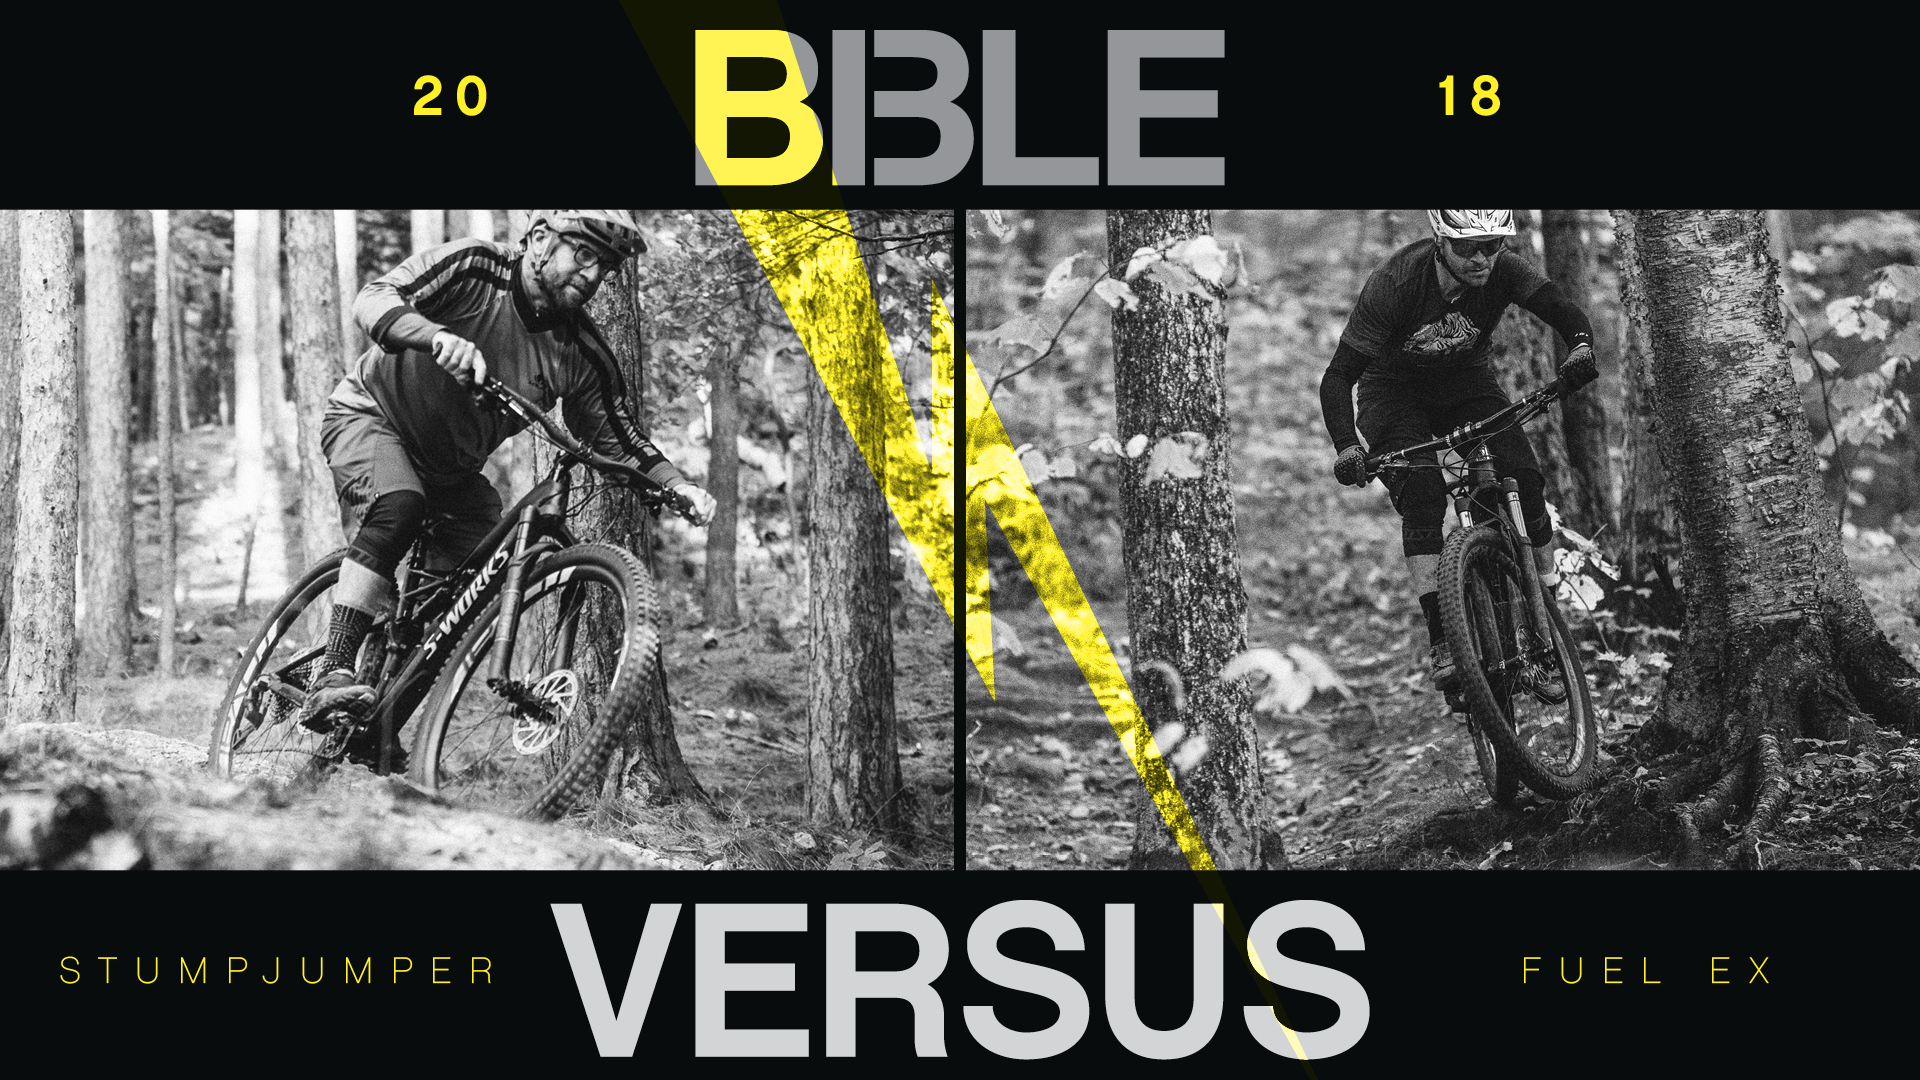 Bible Versus: Trek Fuel EX 9.9 vs. Specialized S-Works Stumpjumper 29 | BIKE Magazine